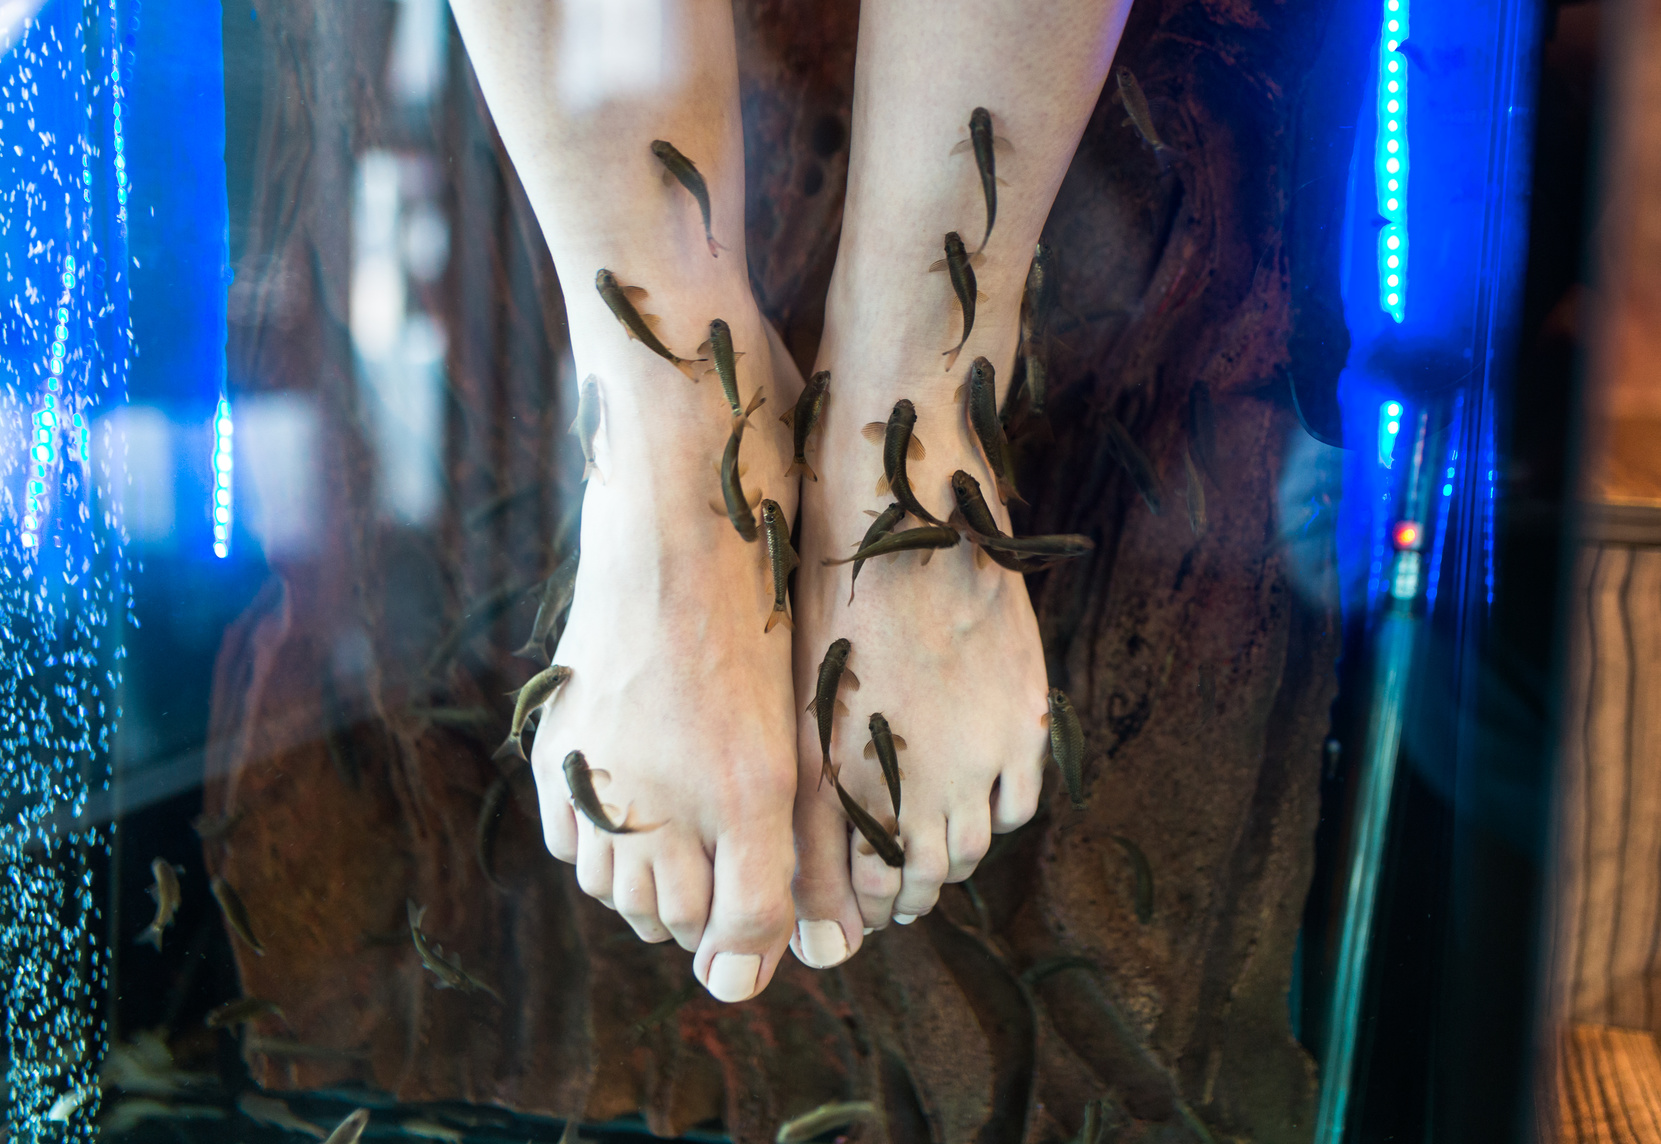 Pedicure spa with fishes. Rufa garra fish spa treatment. Close up. Selective focus, short depth of filed.